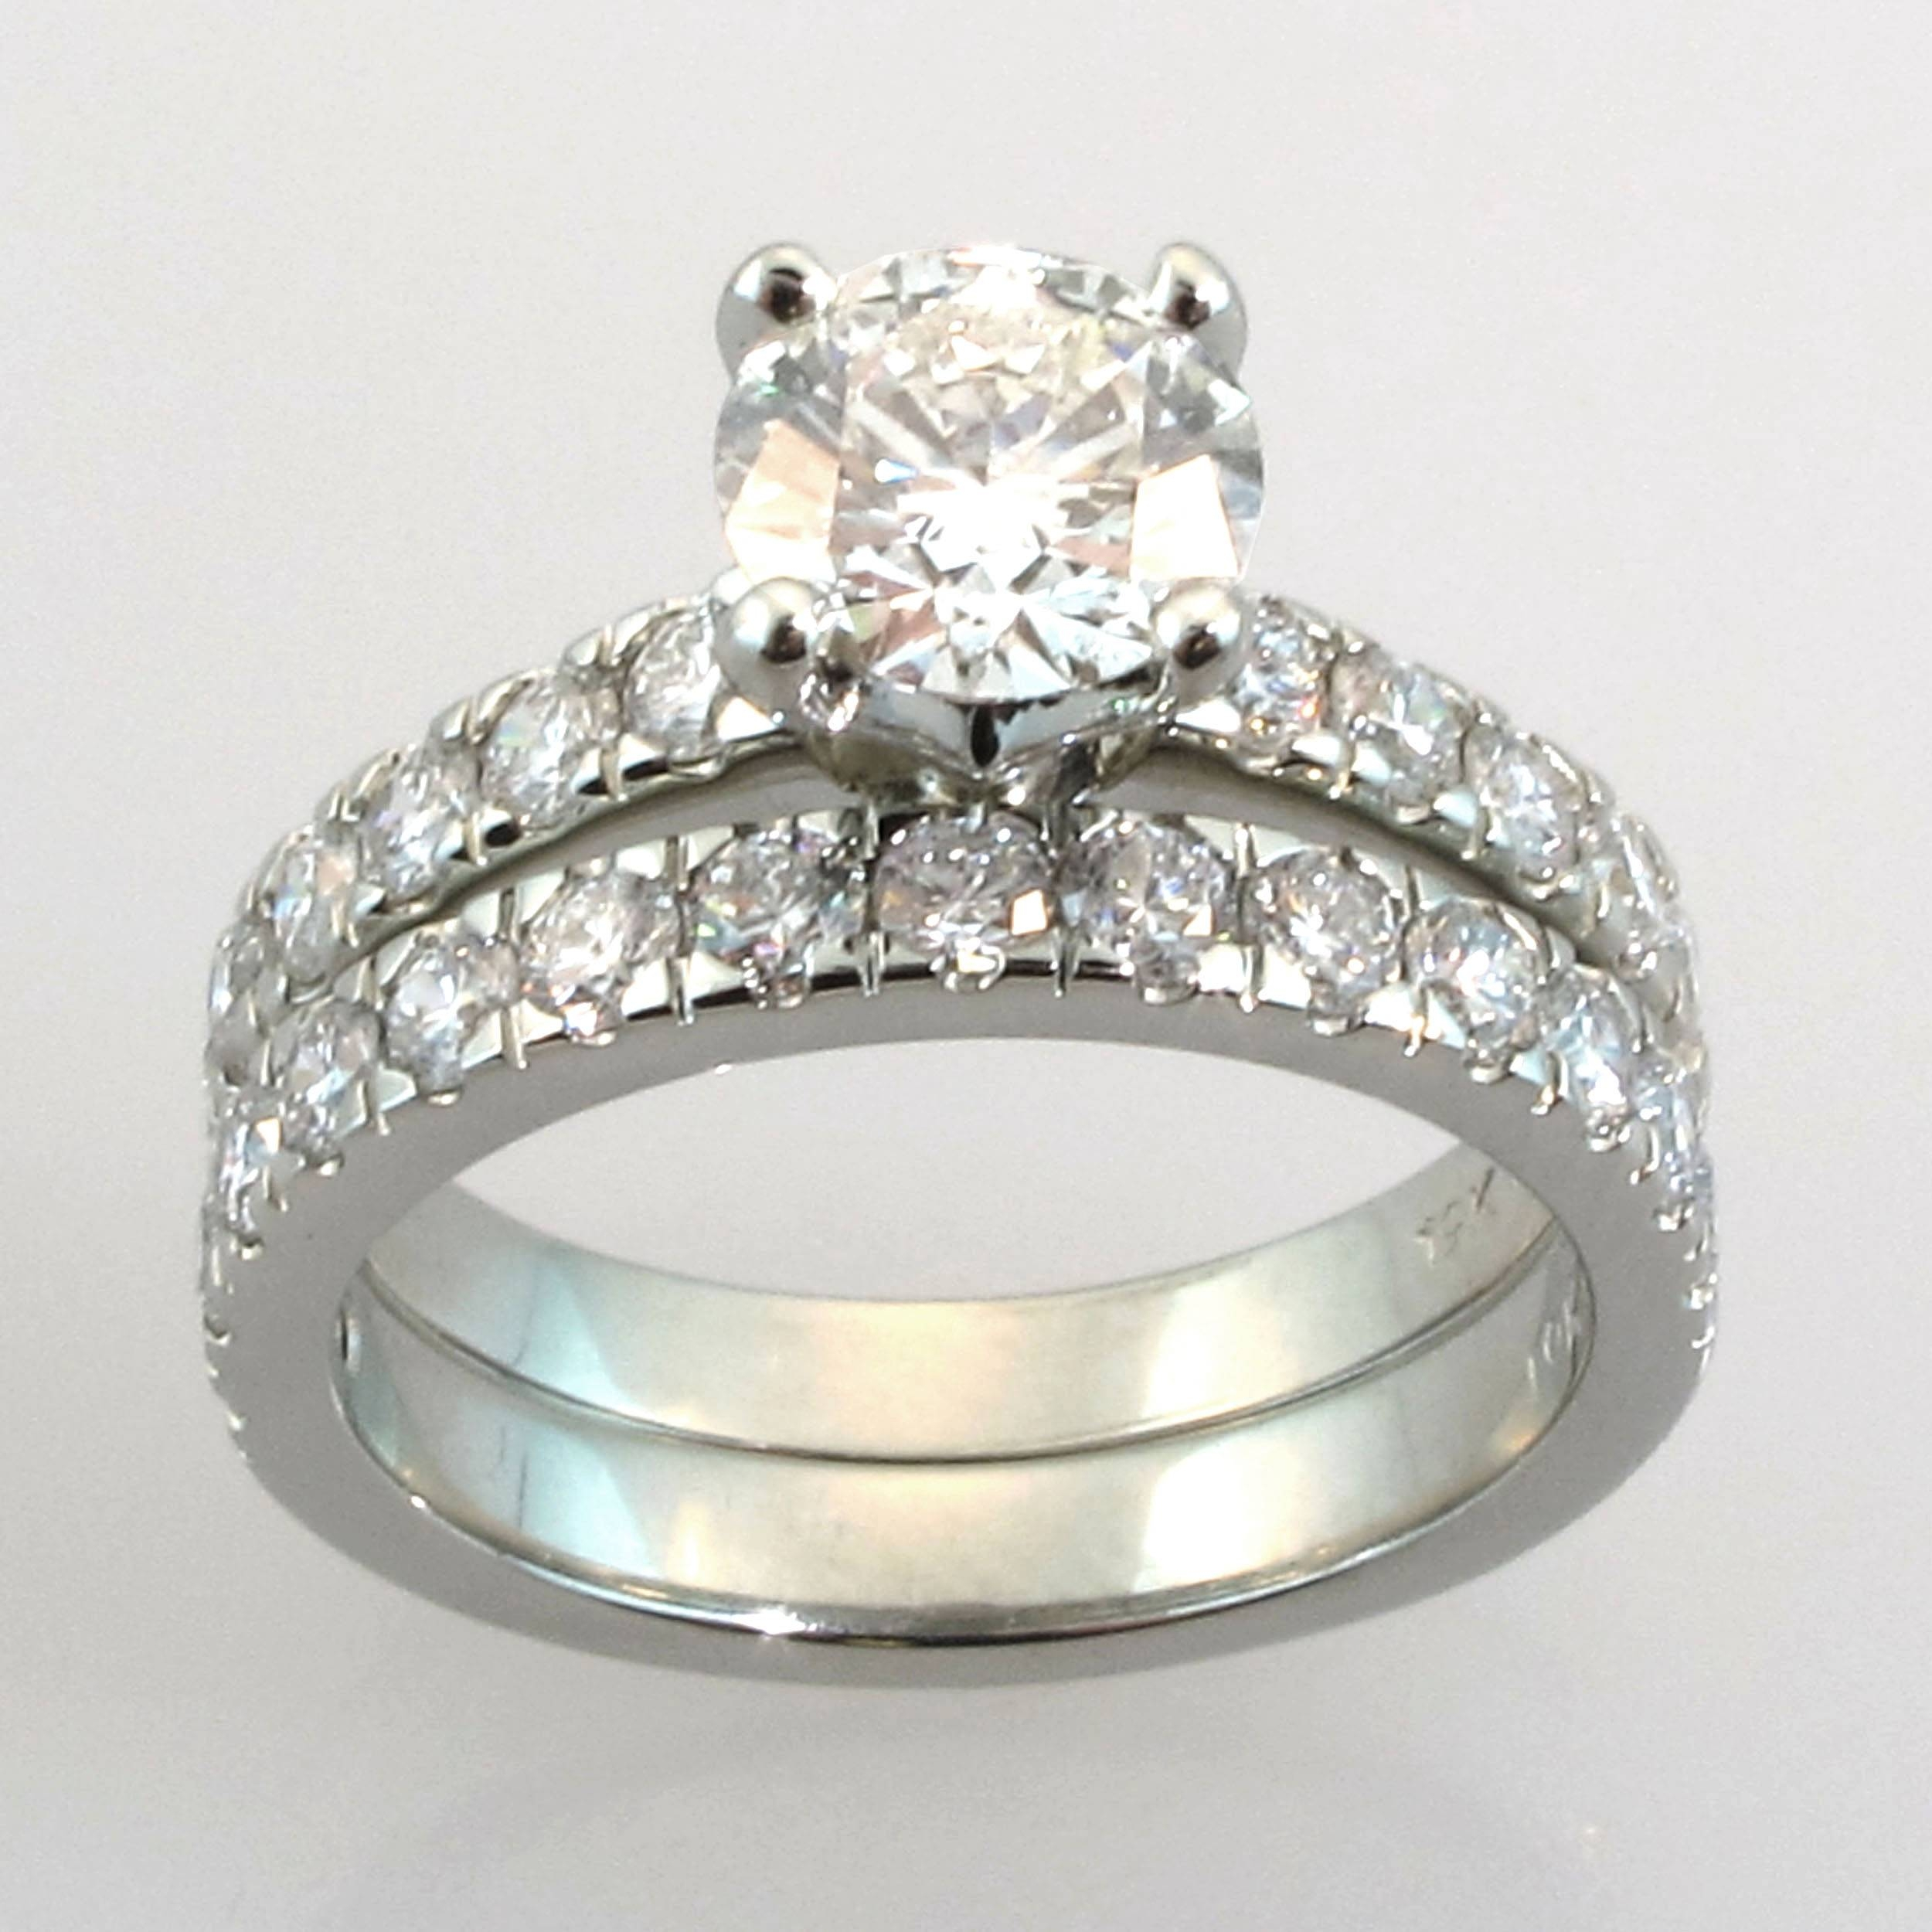 Custom Wedding Rings Bridal Sets Engagement Vancouver Inside And